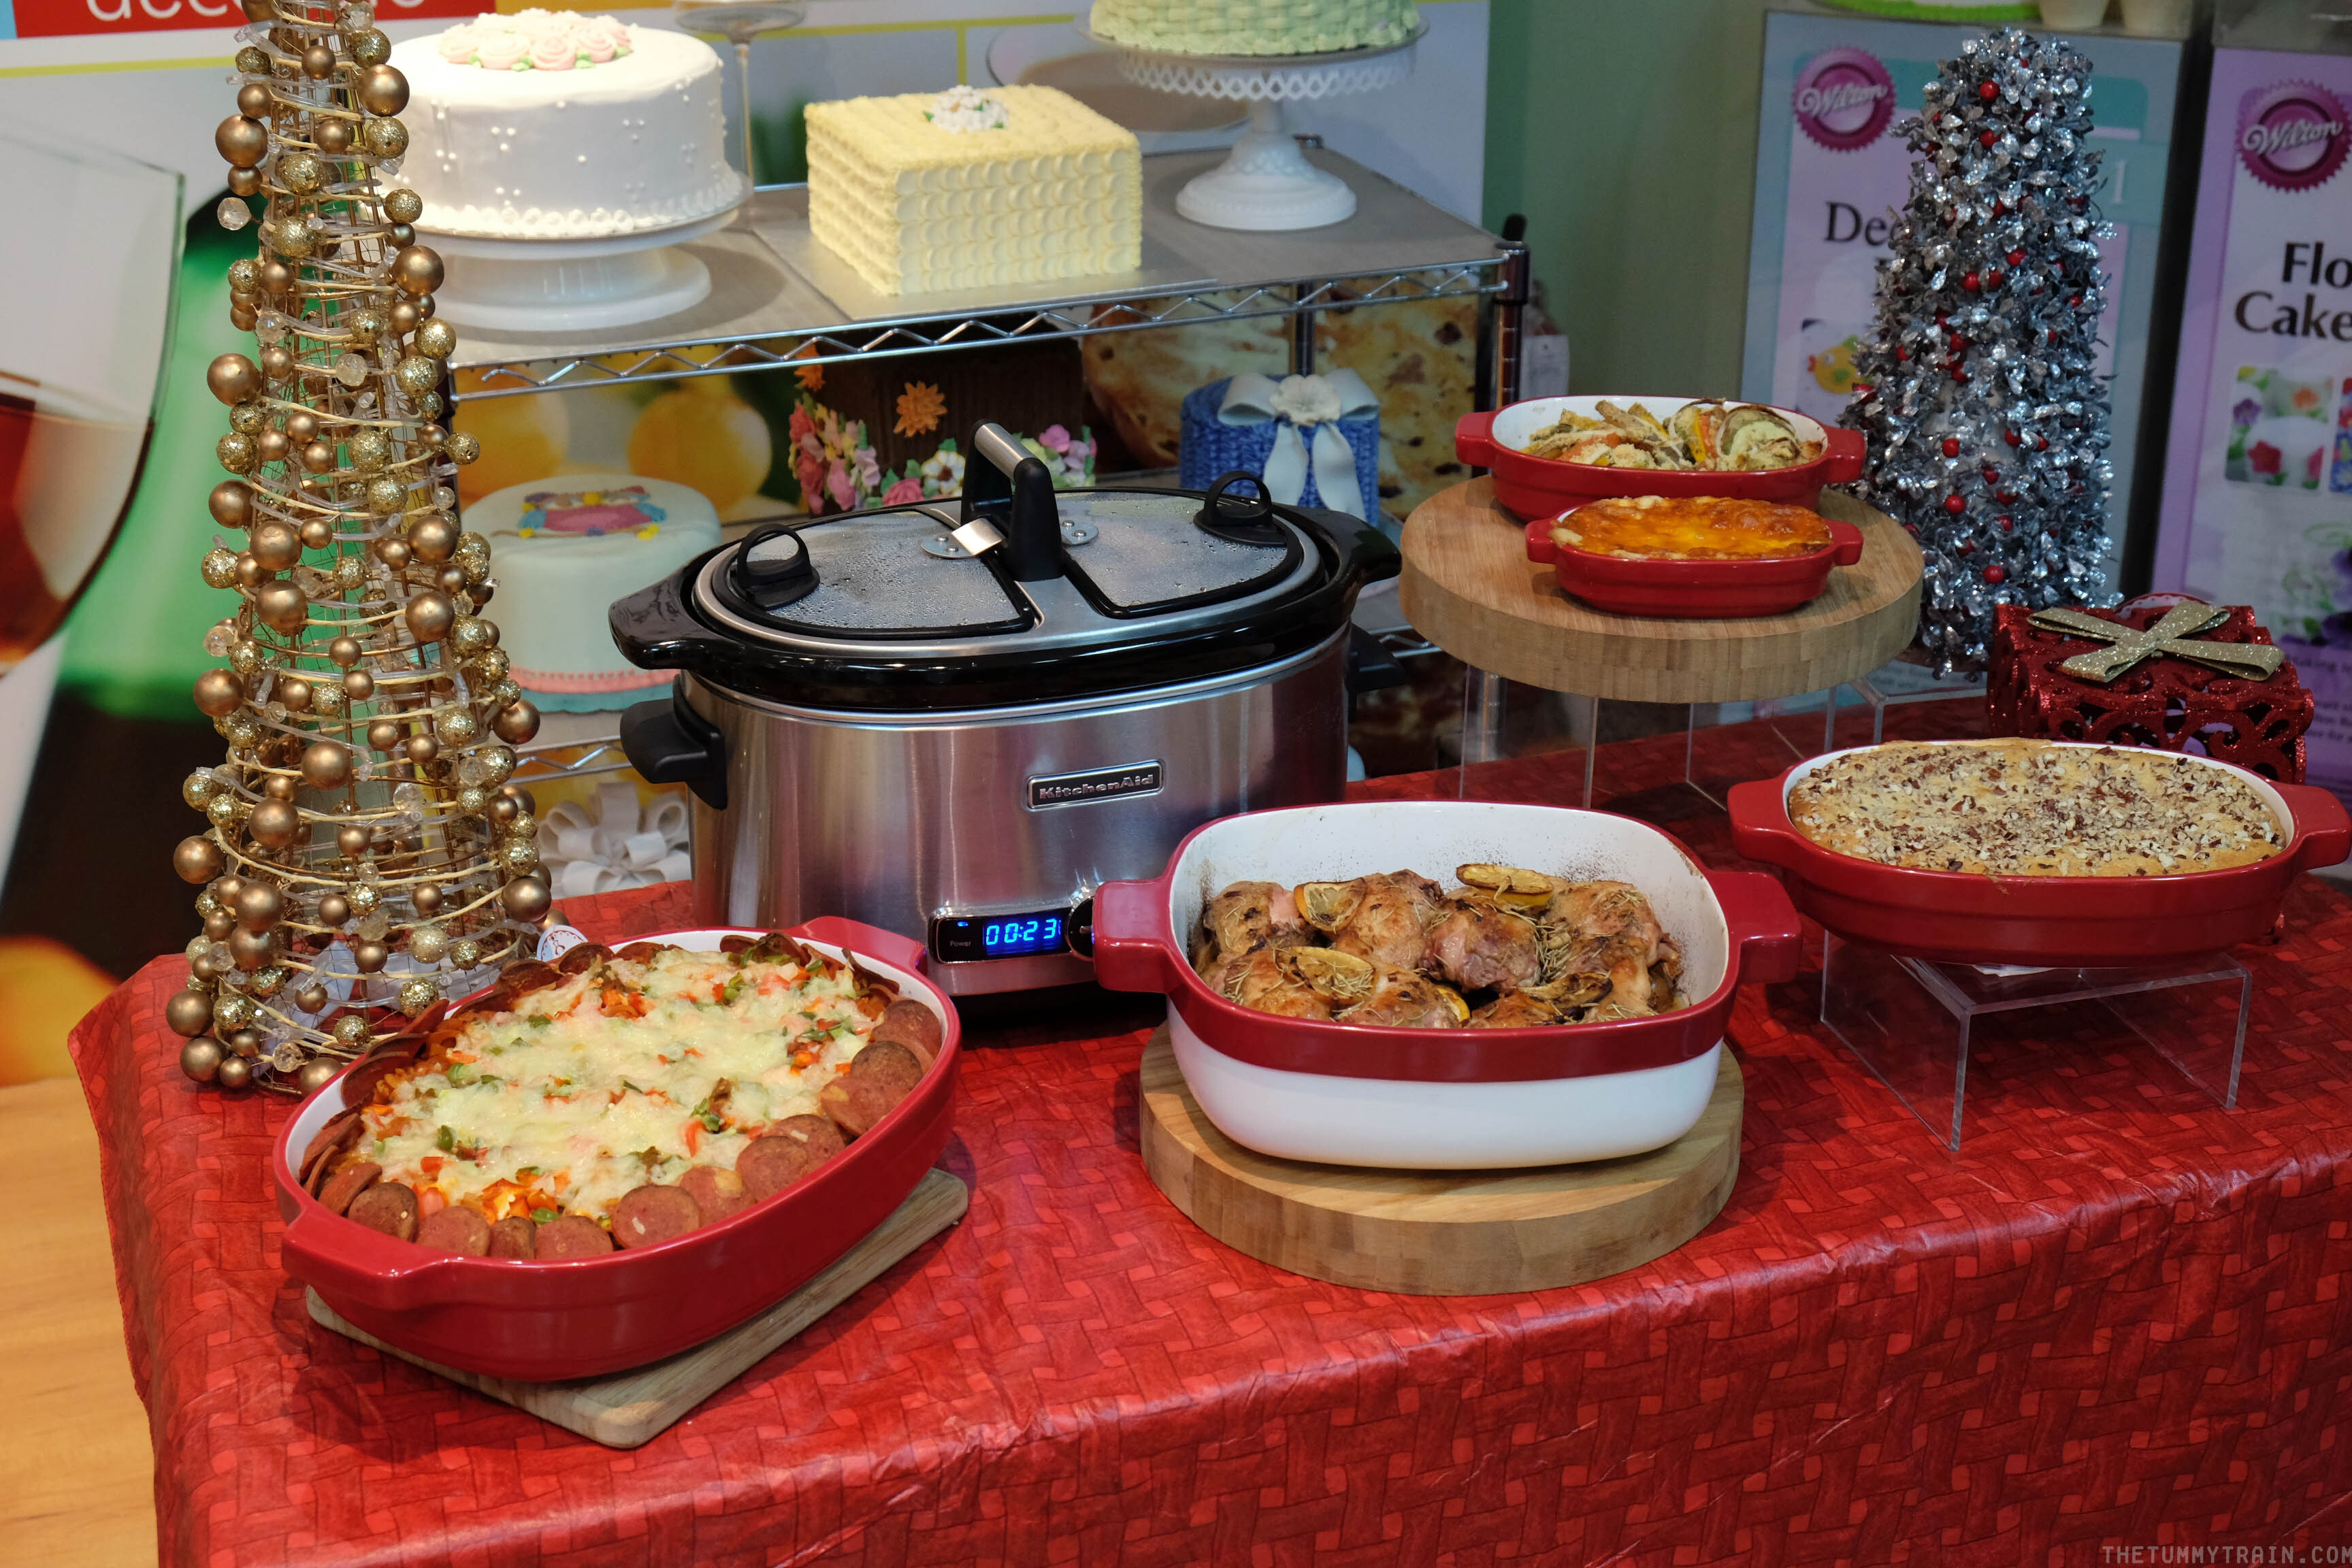 Kicking off the holiday cooking mania with KitchenAid